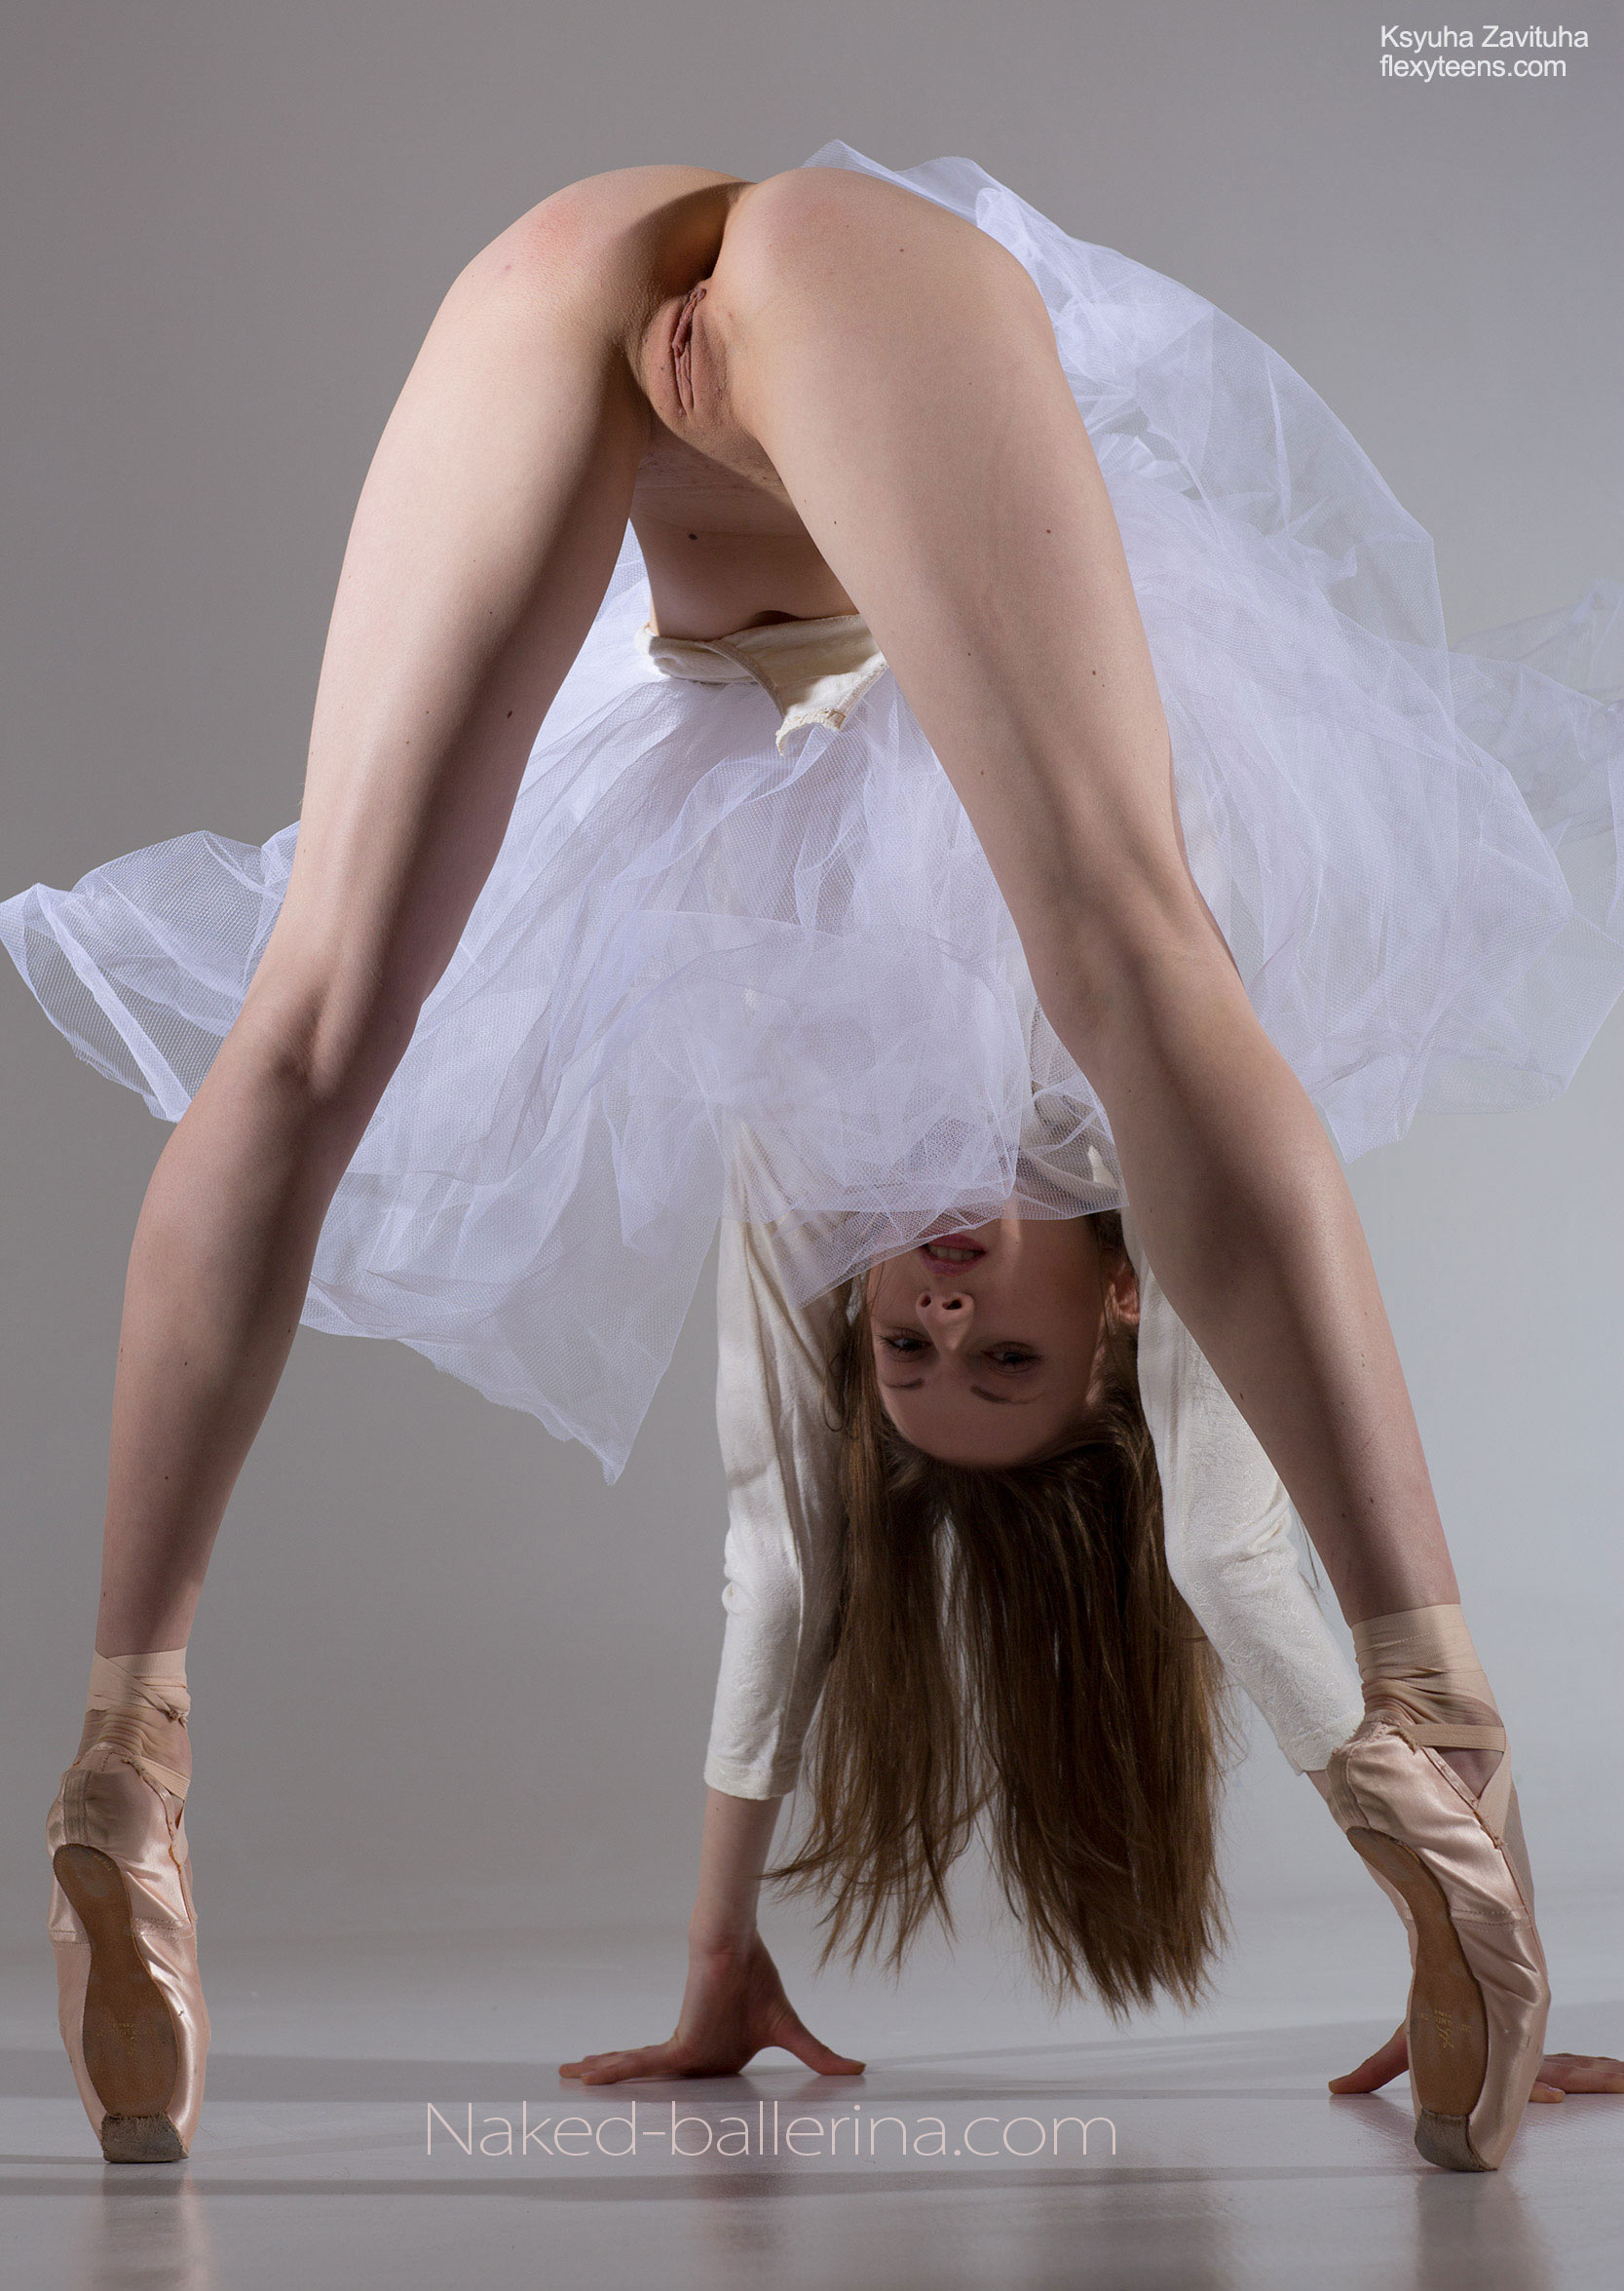 pictures-of-naked-ballerinas-free-squirt-female